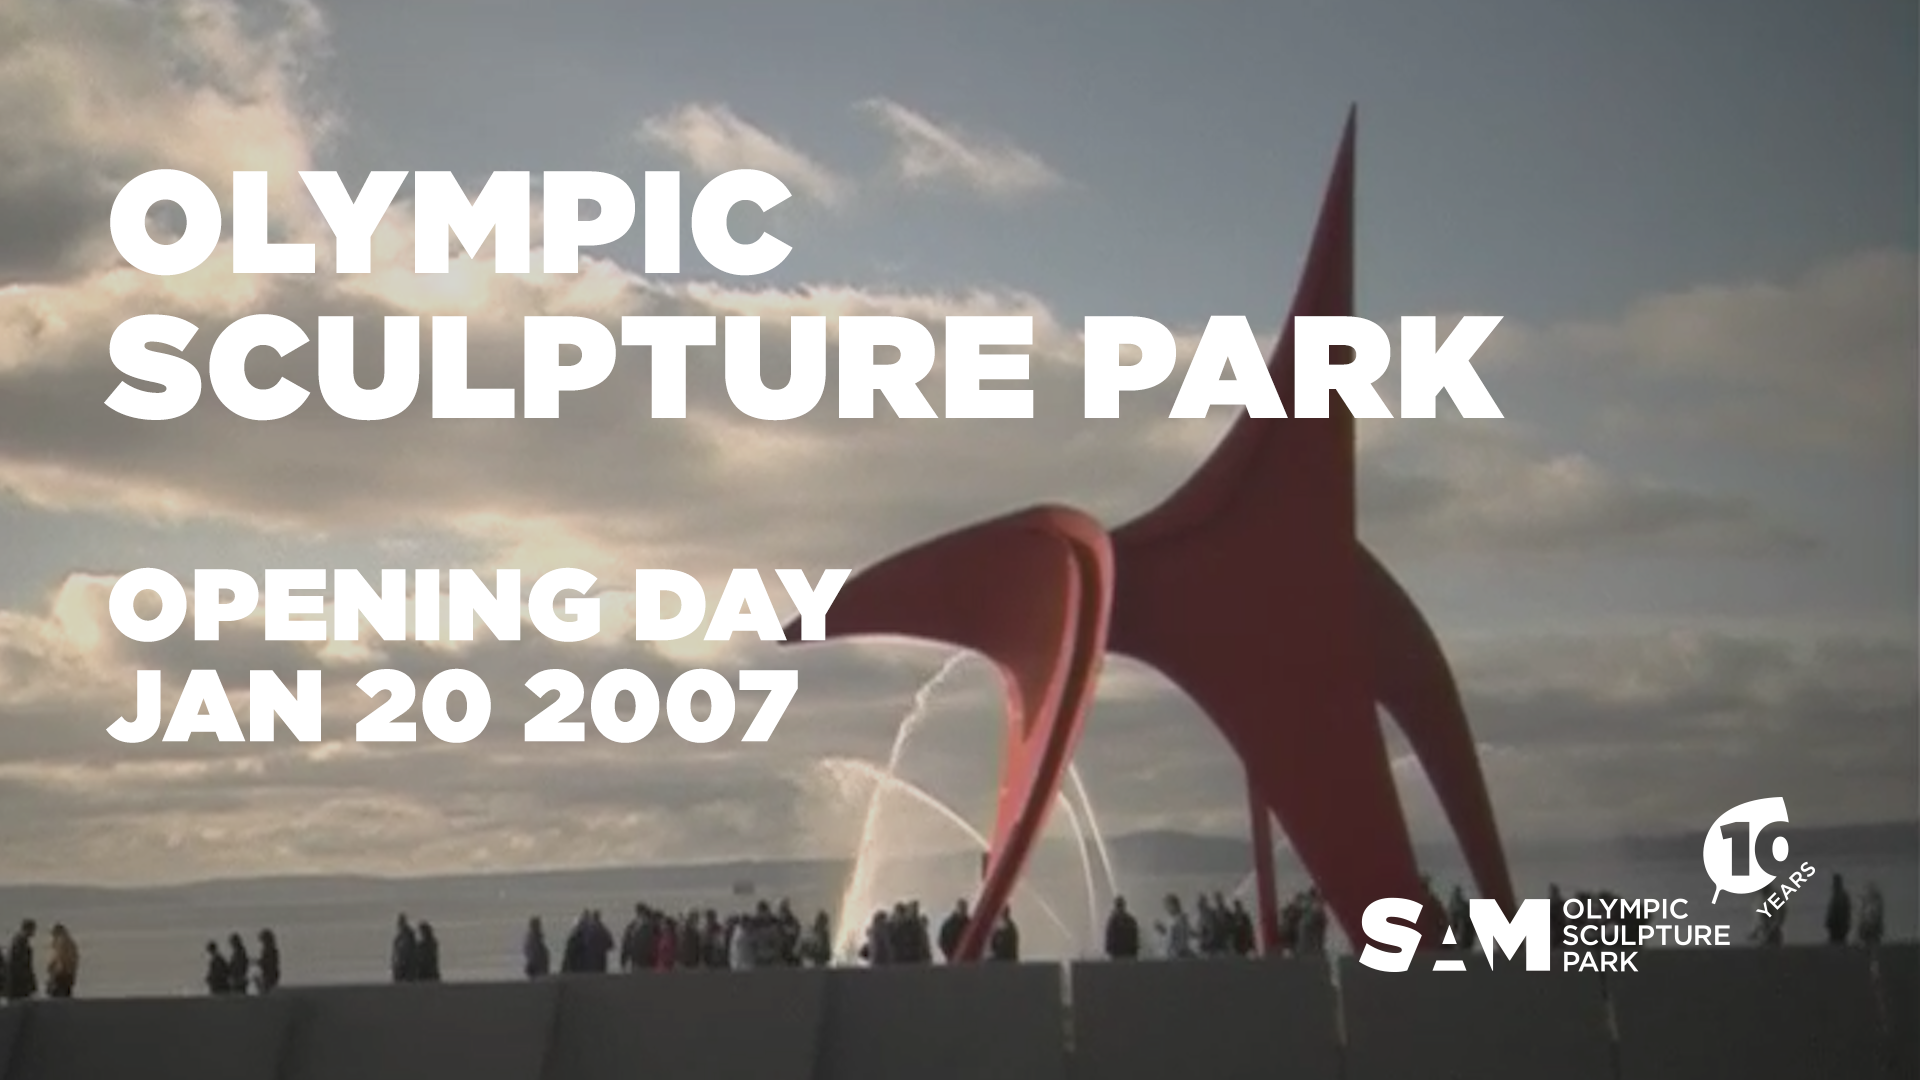 Olympic Sculpture Park: Sculpting a Universe